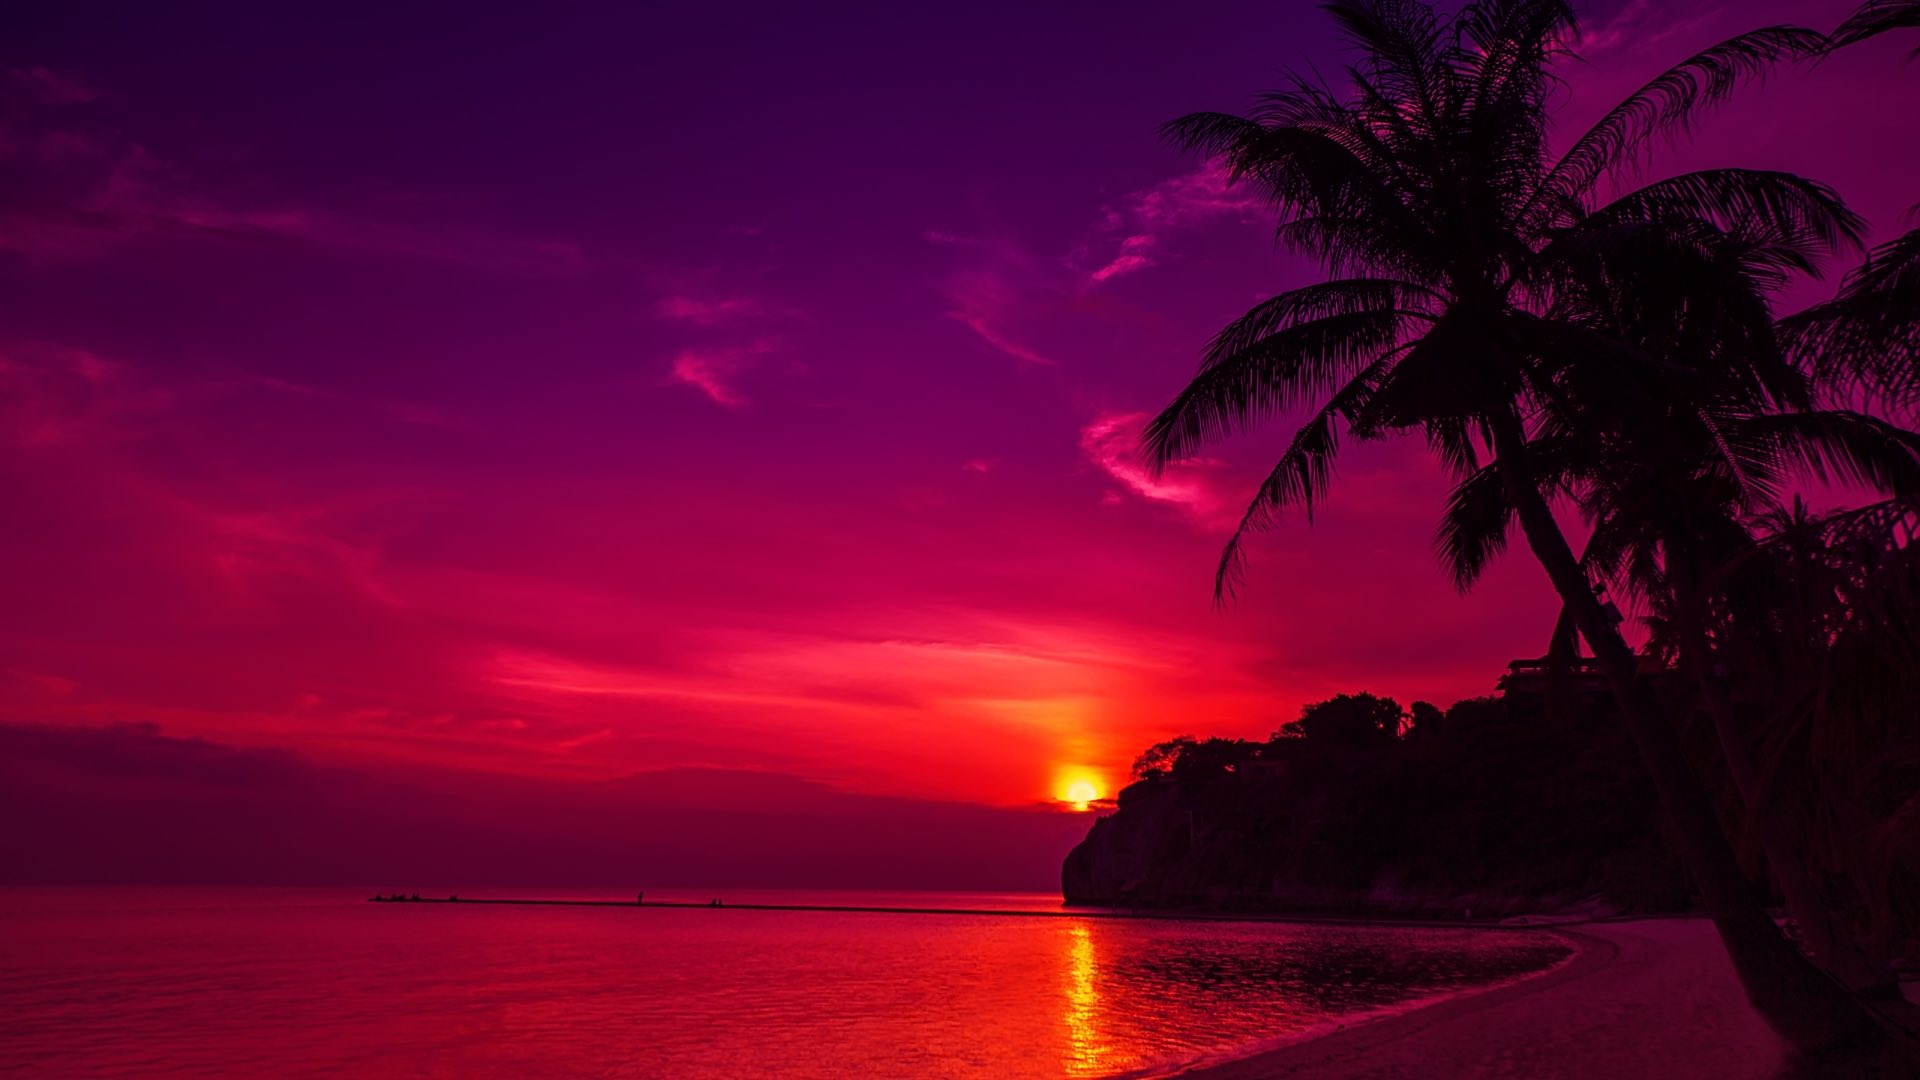 Sunset at a Thai beach